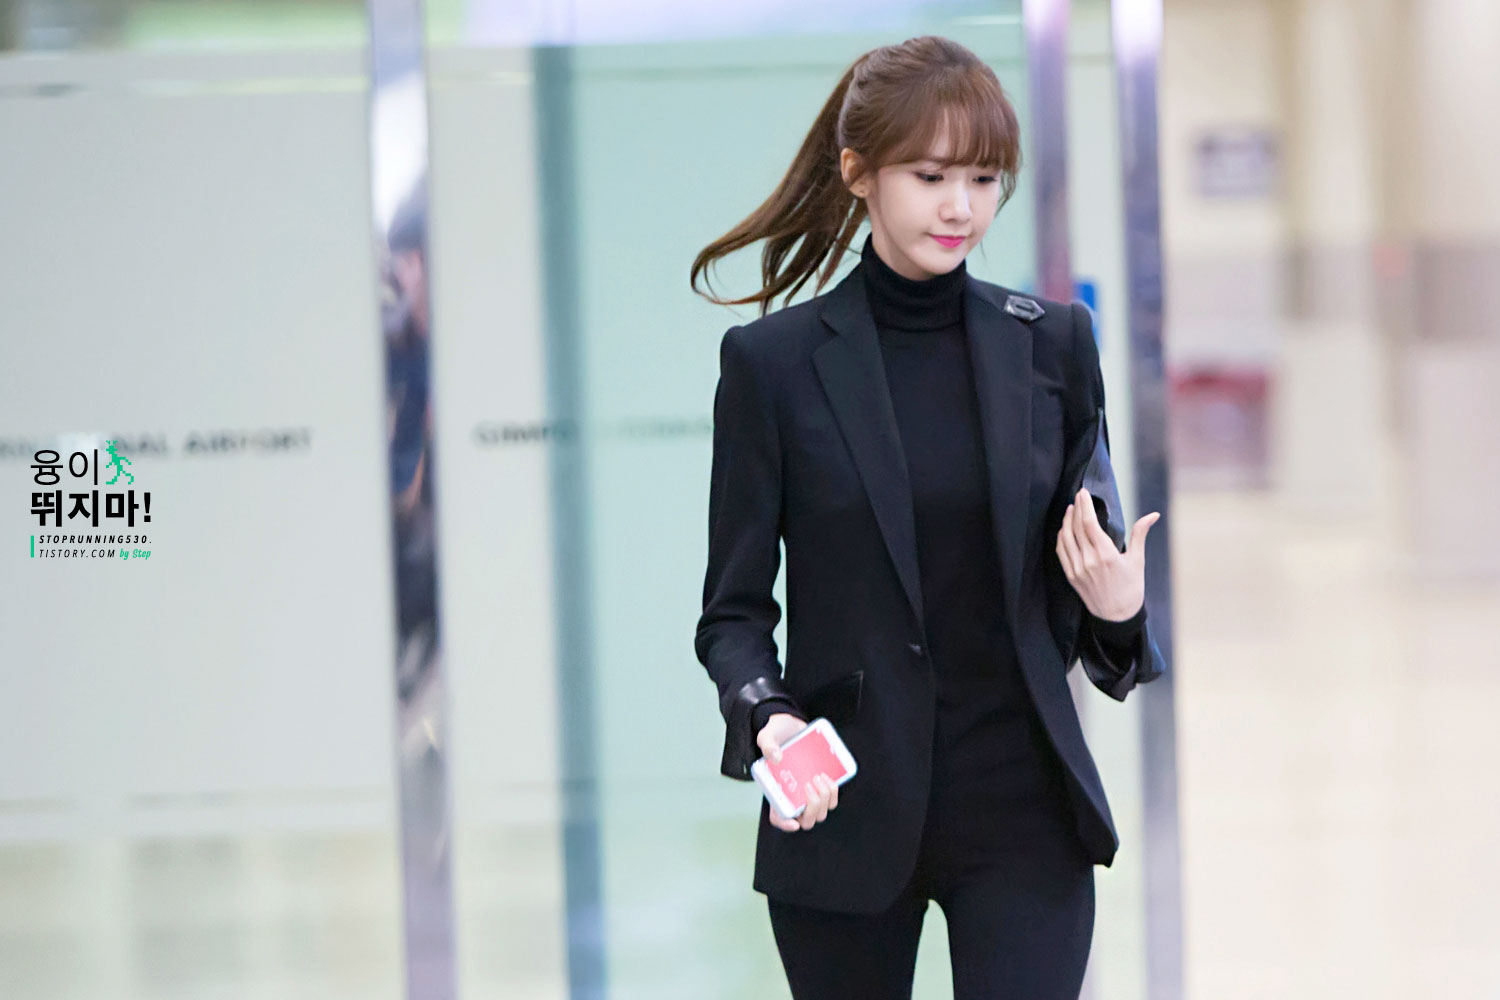 SNSD Choi Sooyoung and her airport fashion style